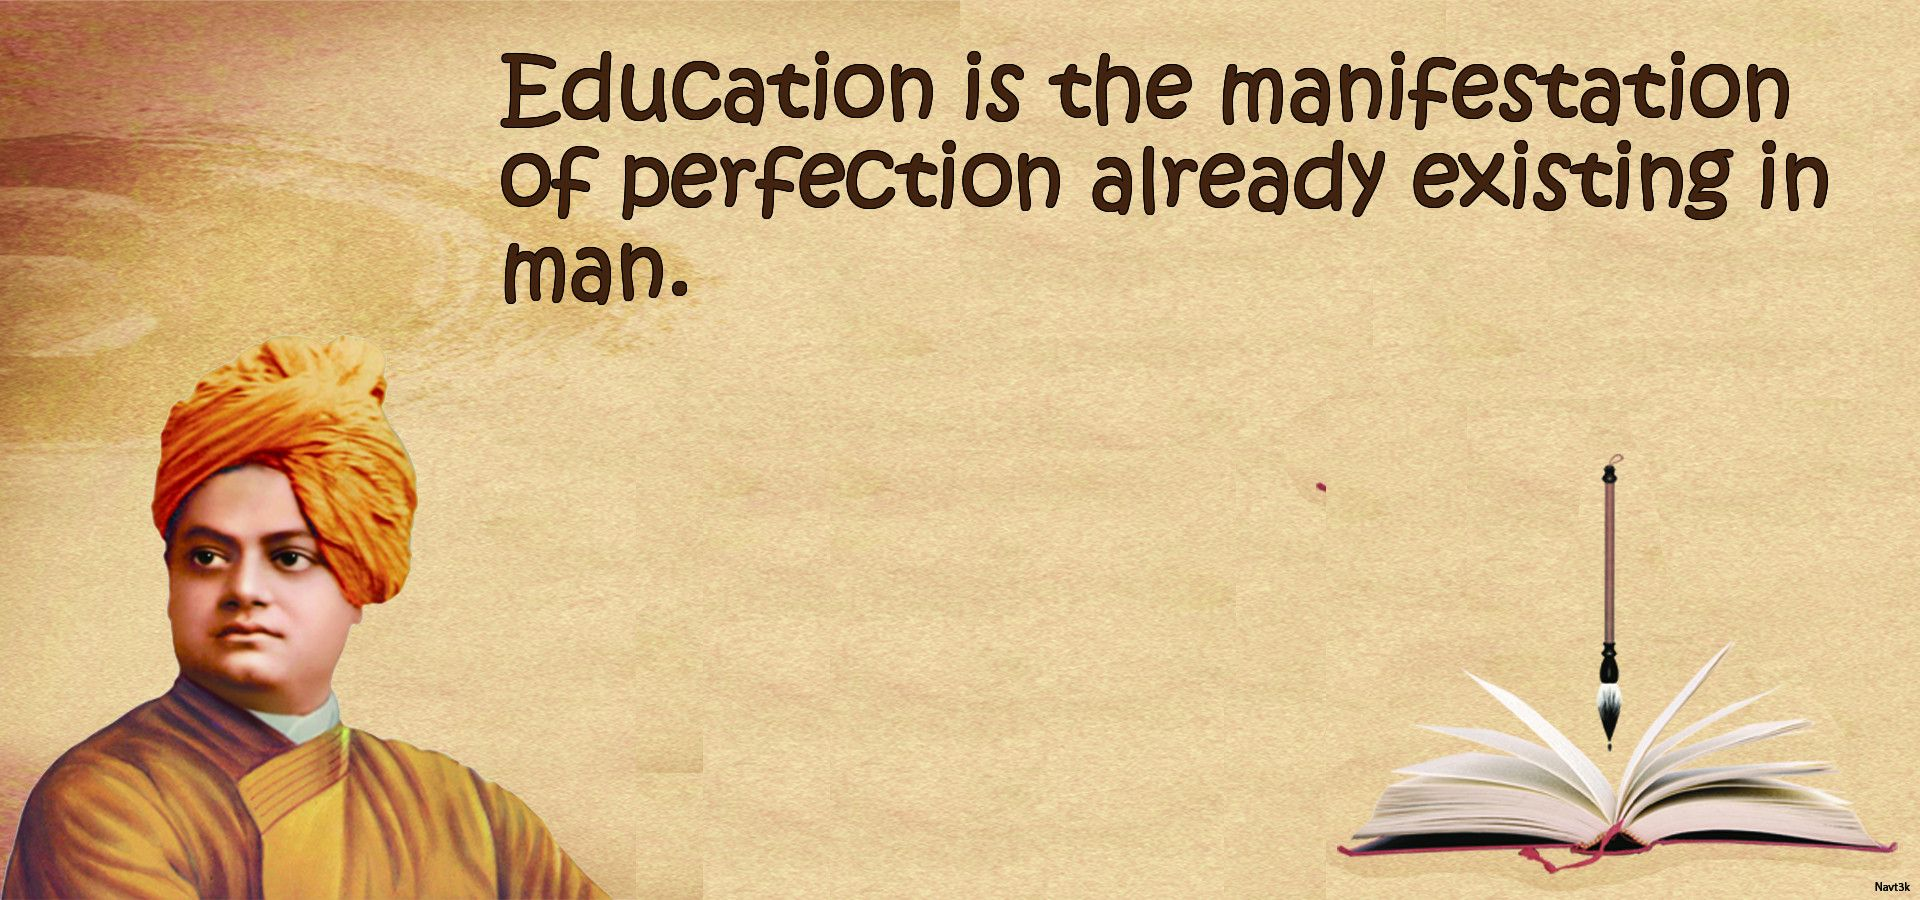 Education is the manifestation of perfection already